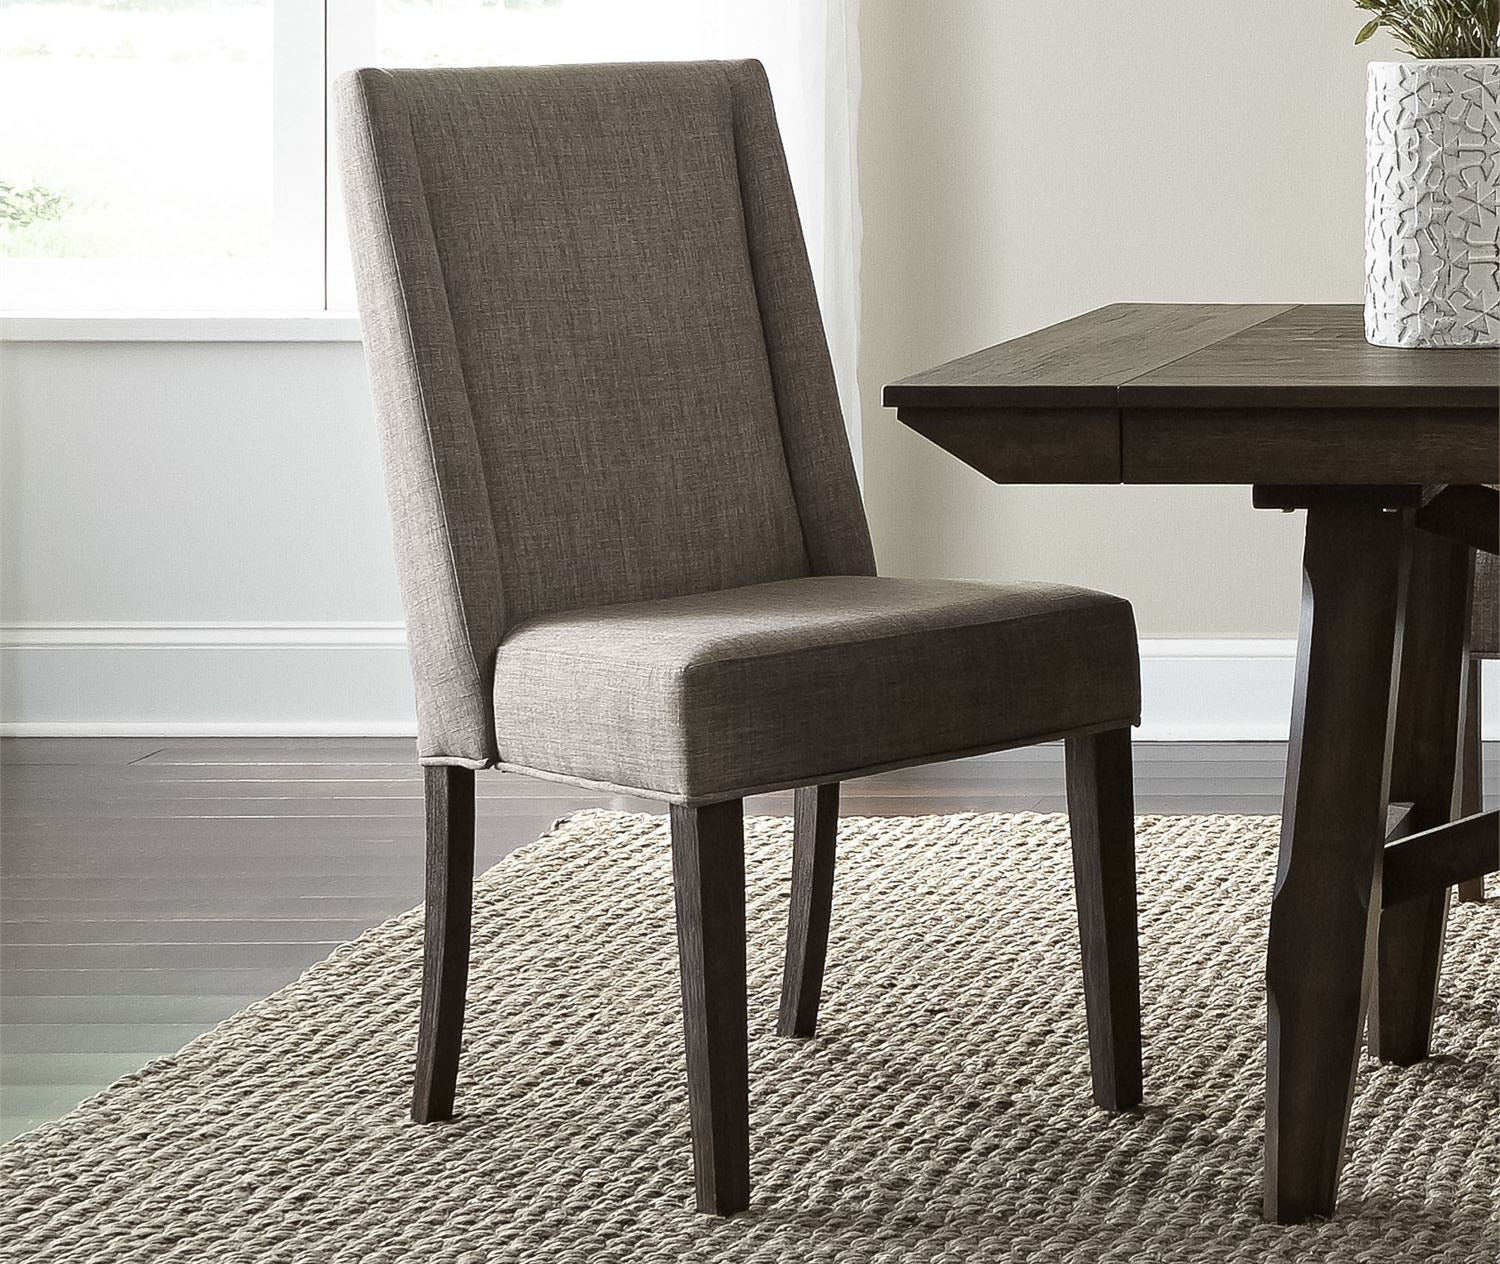 Aidan Upholstered Dining Chair - MJM Furniture